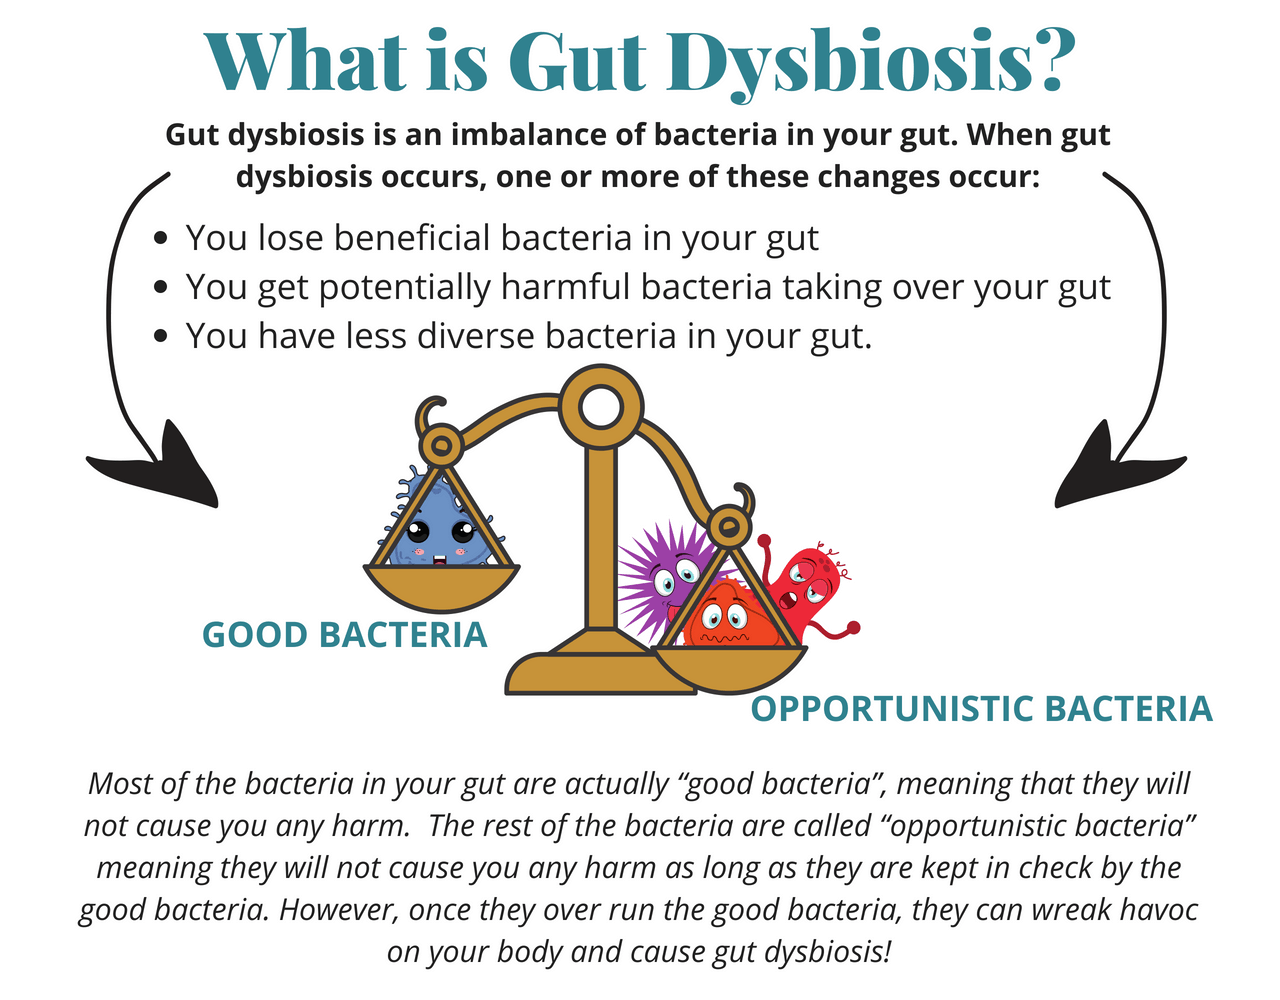 What is Gut Dysbiosis?